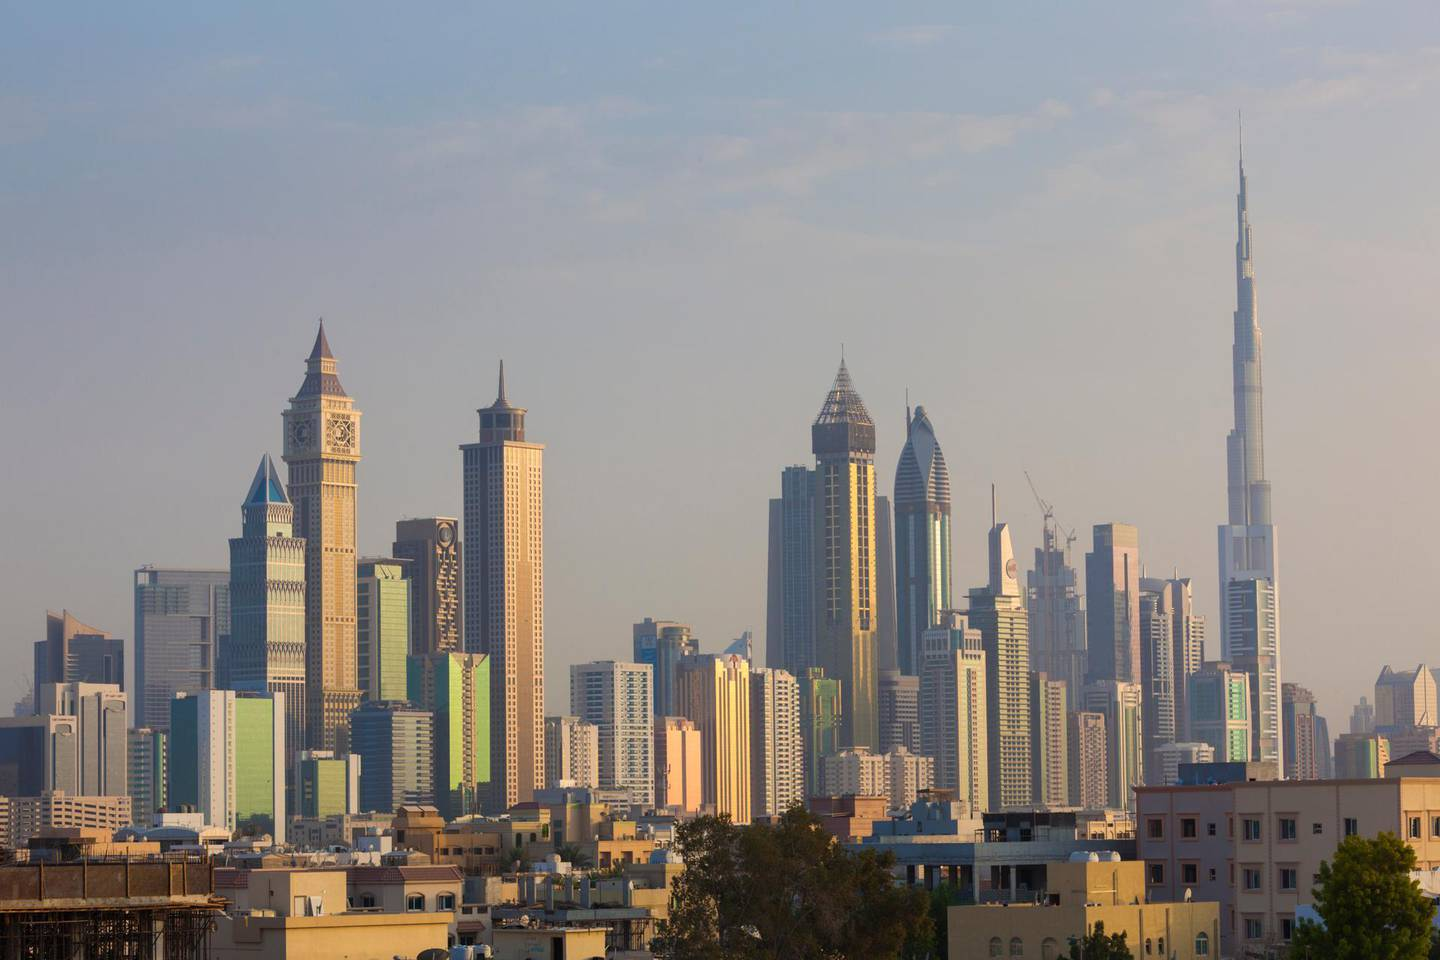 Skyscrapers along Sheikh Zayed Road, skyline from Jumeirah, Jumeirah, Dubai, United Arab Emirates. Getty Images